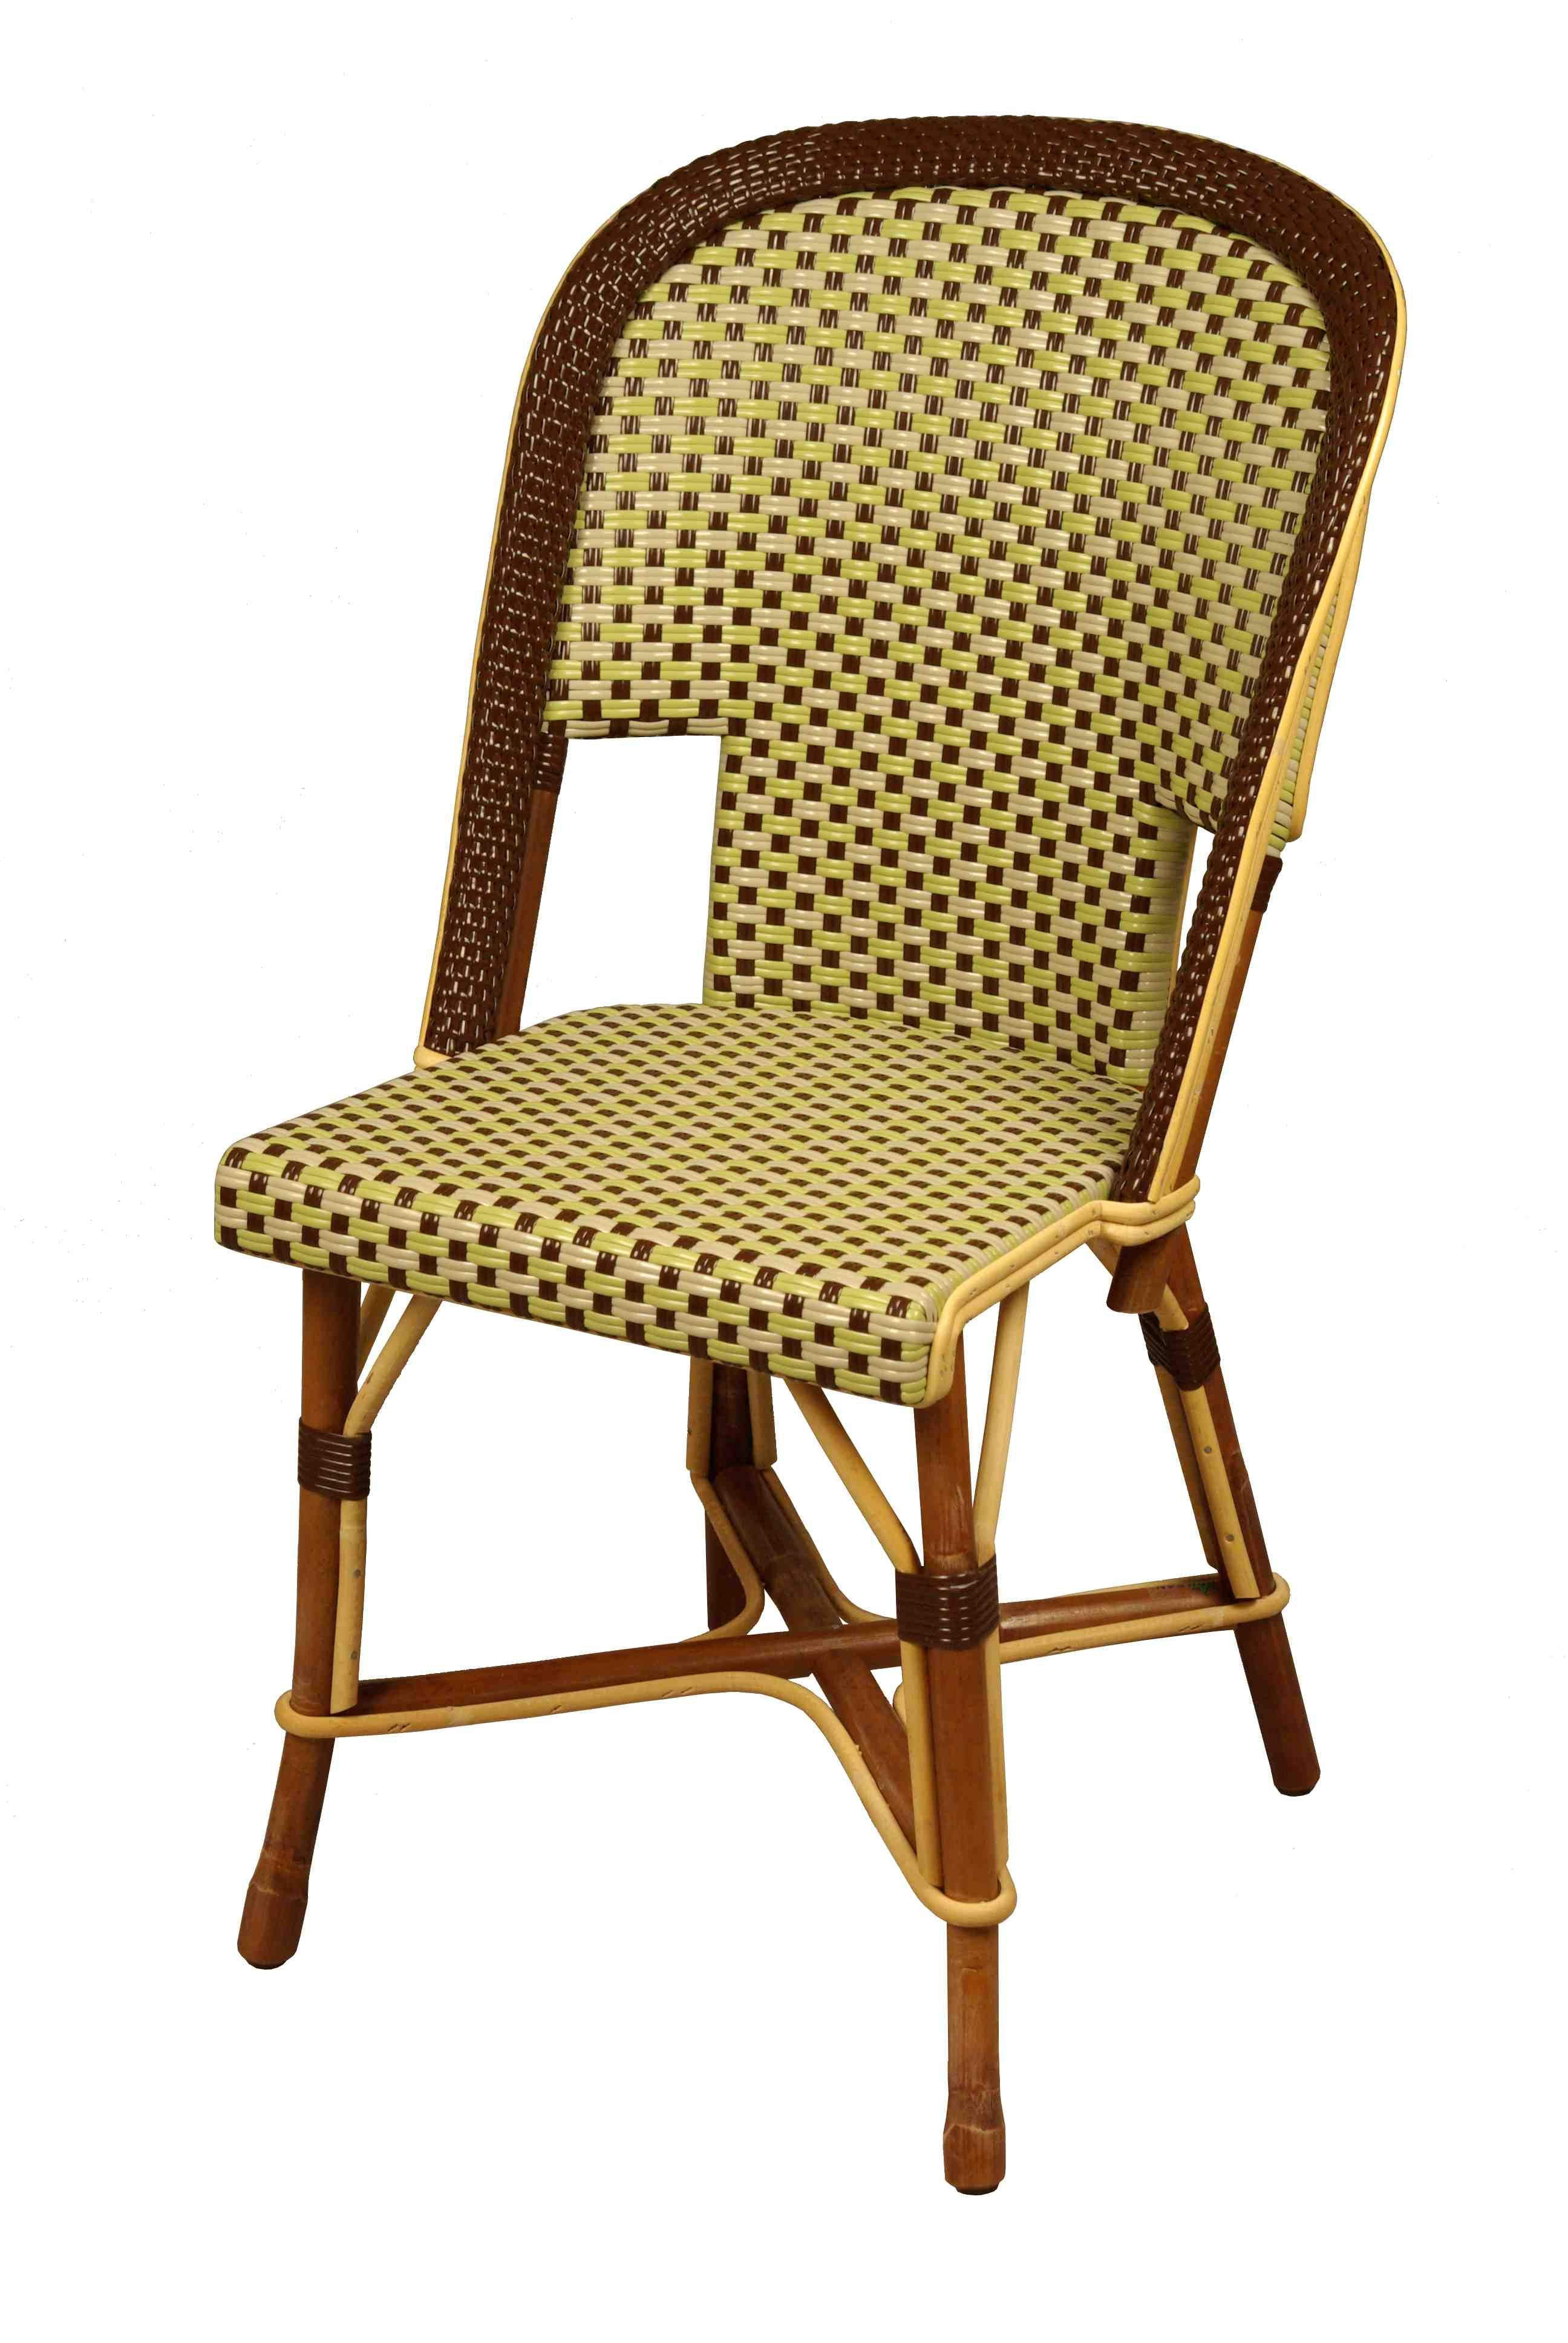 Chaise Neuilly French Bistro Chair From Drucker S Collection Tradition Chaise Terrasse Meubles De Patio Decor De Patio